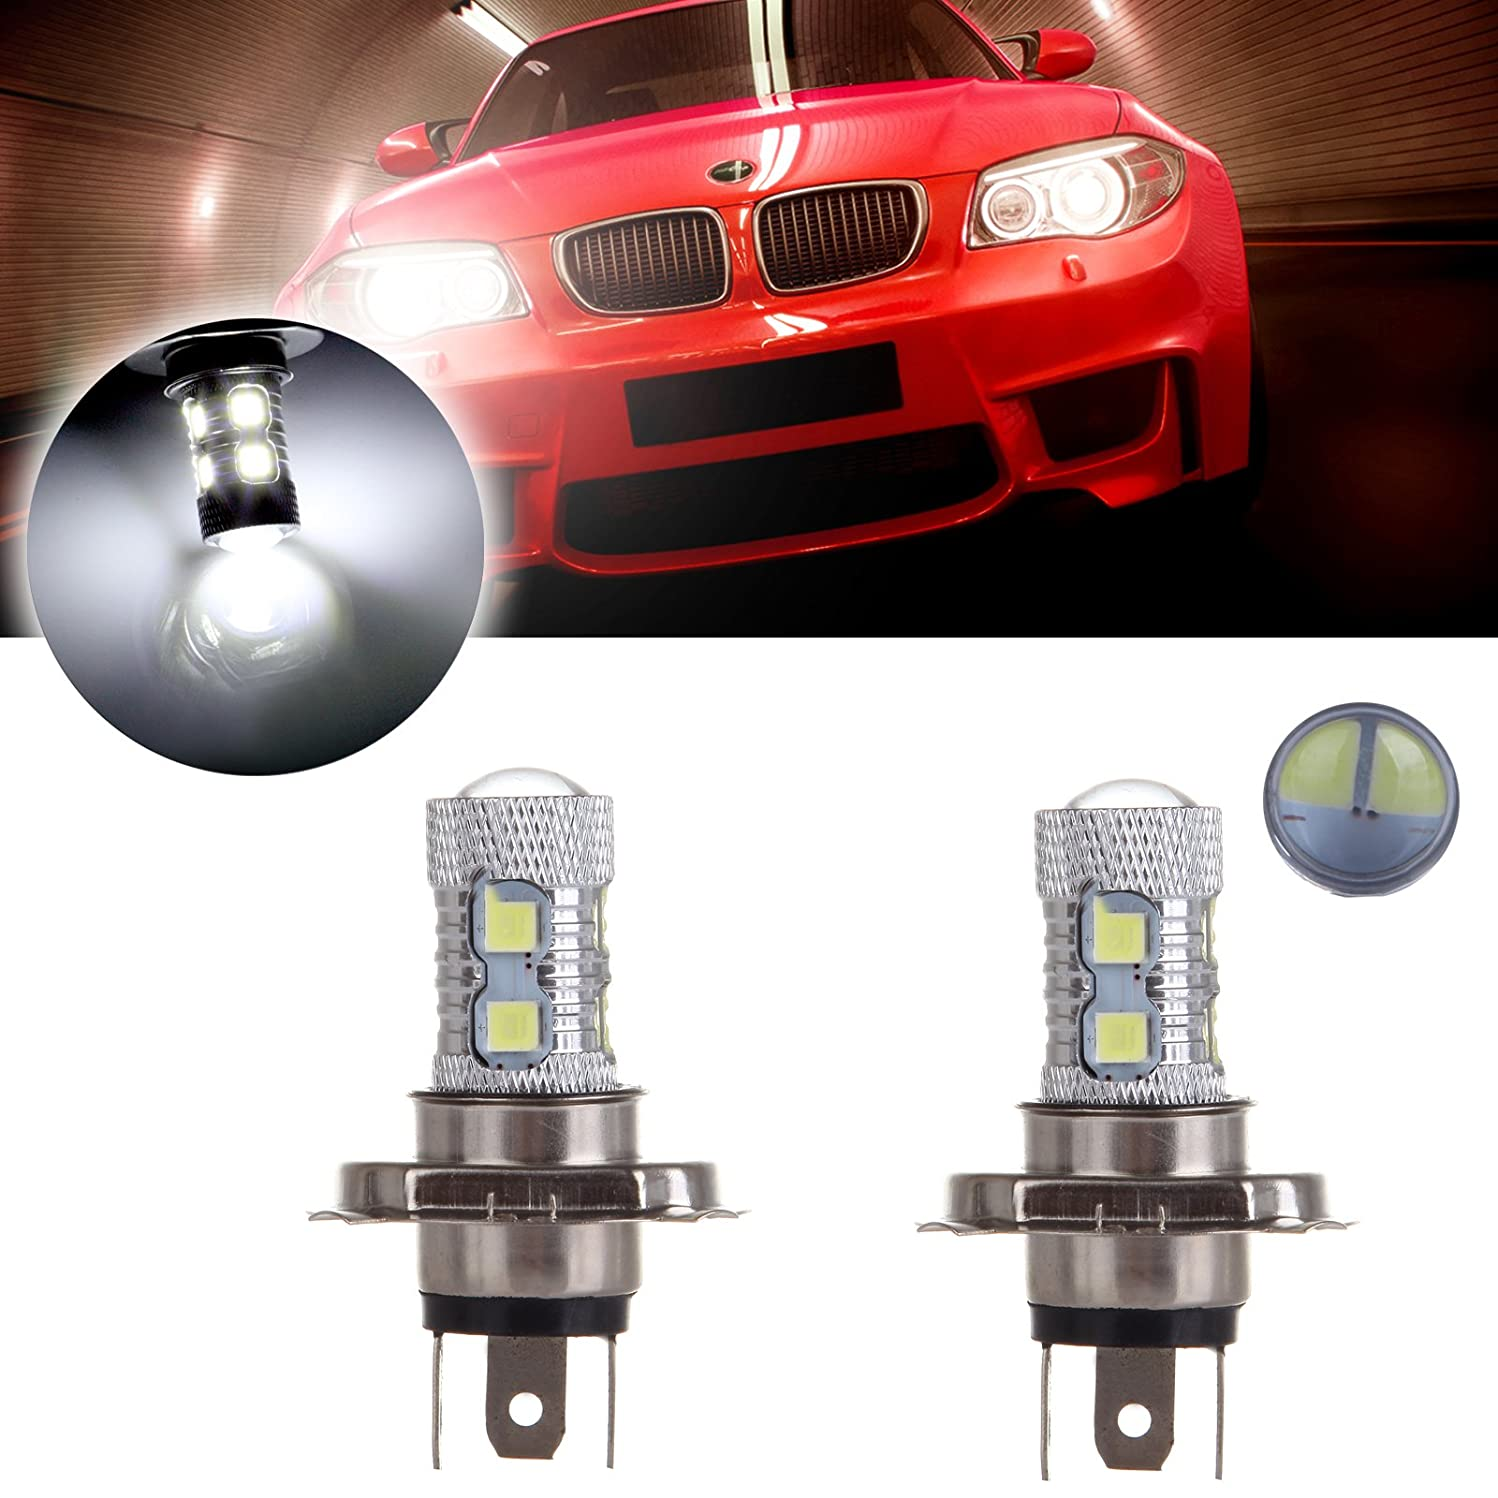 cciyu 2Pack 12V Hight Power 8SMD H4 9003 HB2 CREE LED Hight Low Beam Headlight Driving Fog Lamp Bulb with Projector